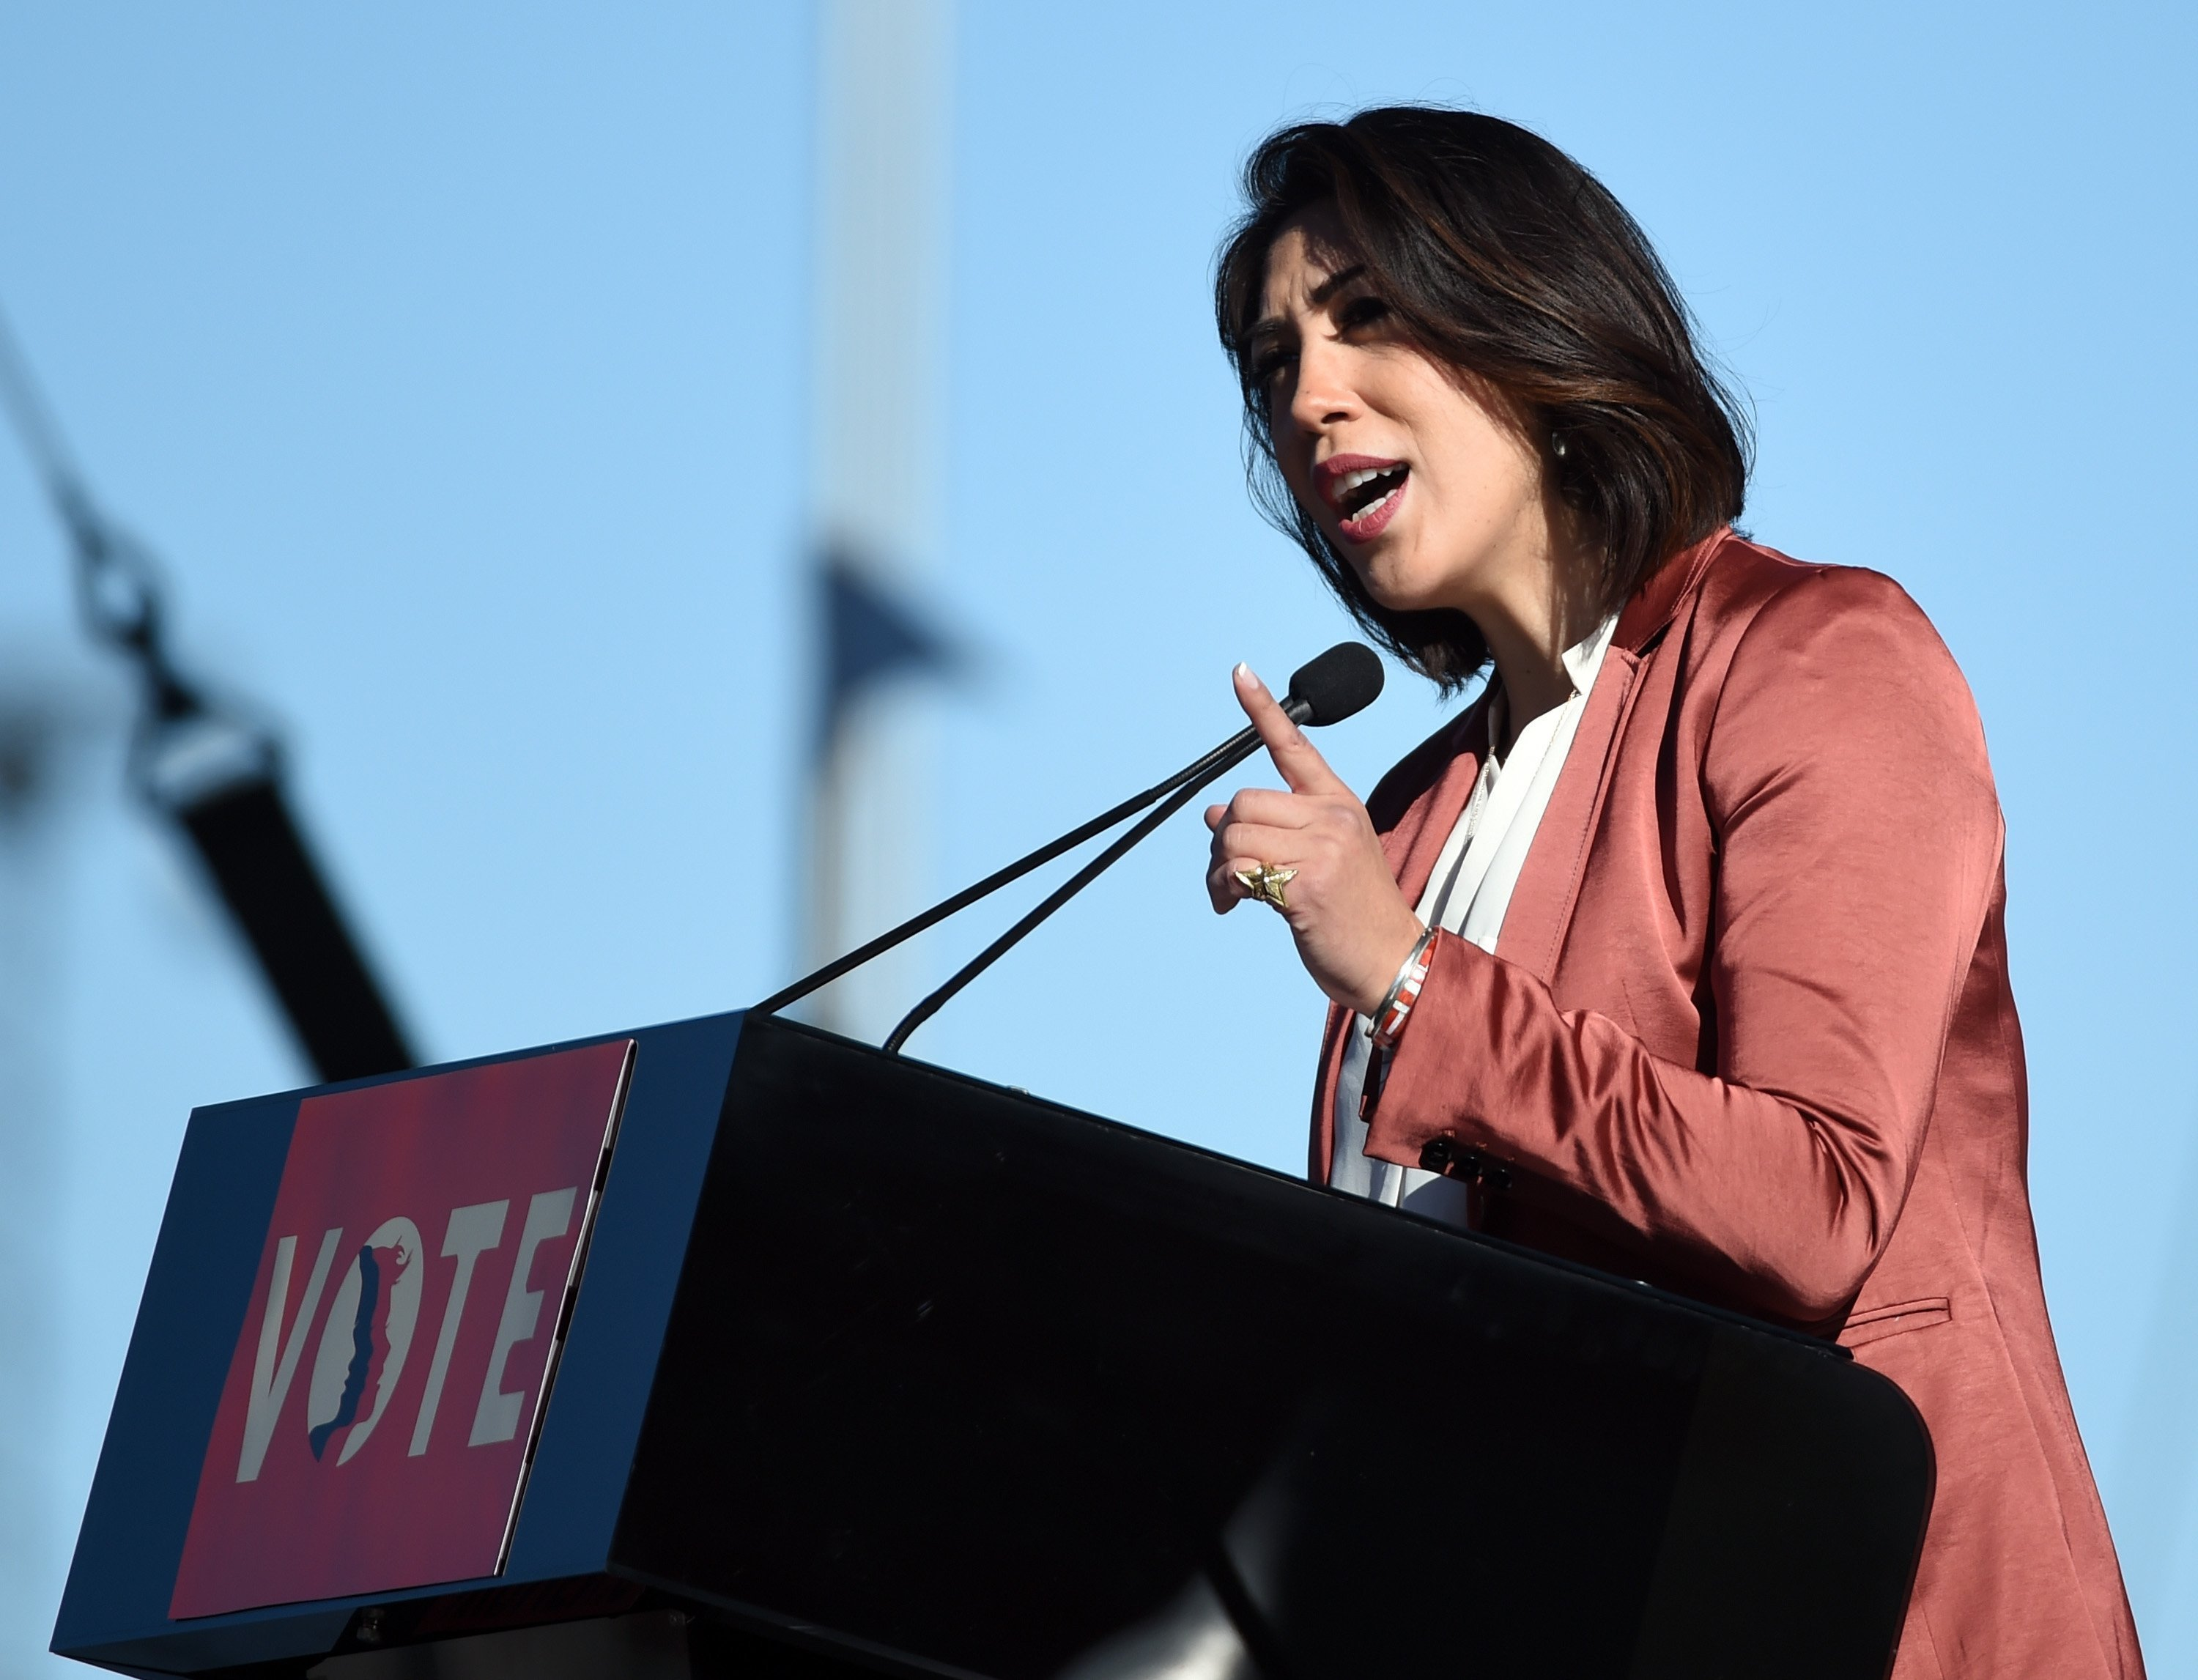 Paulette Jordan wins Idaho's Democratic governor primary